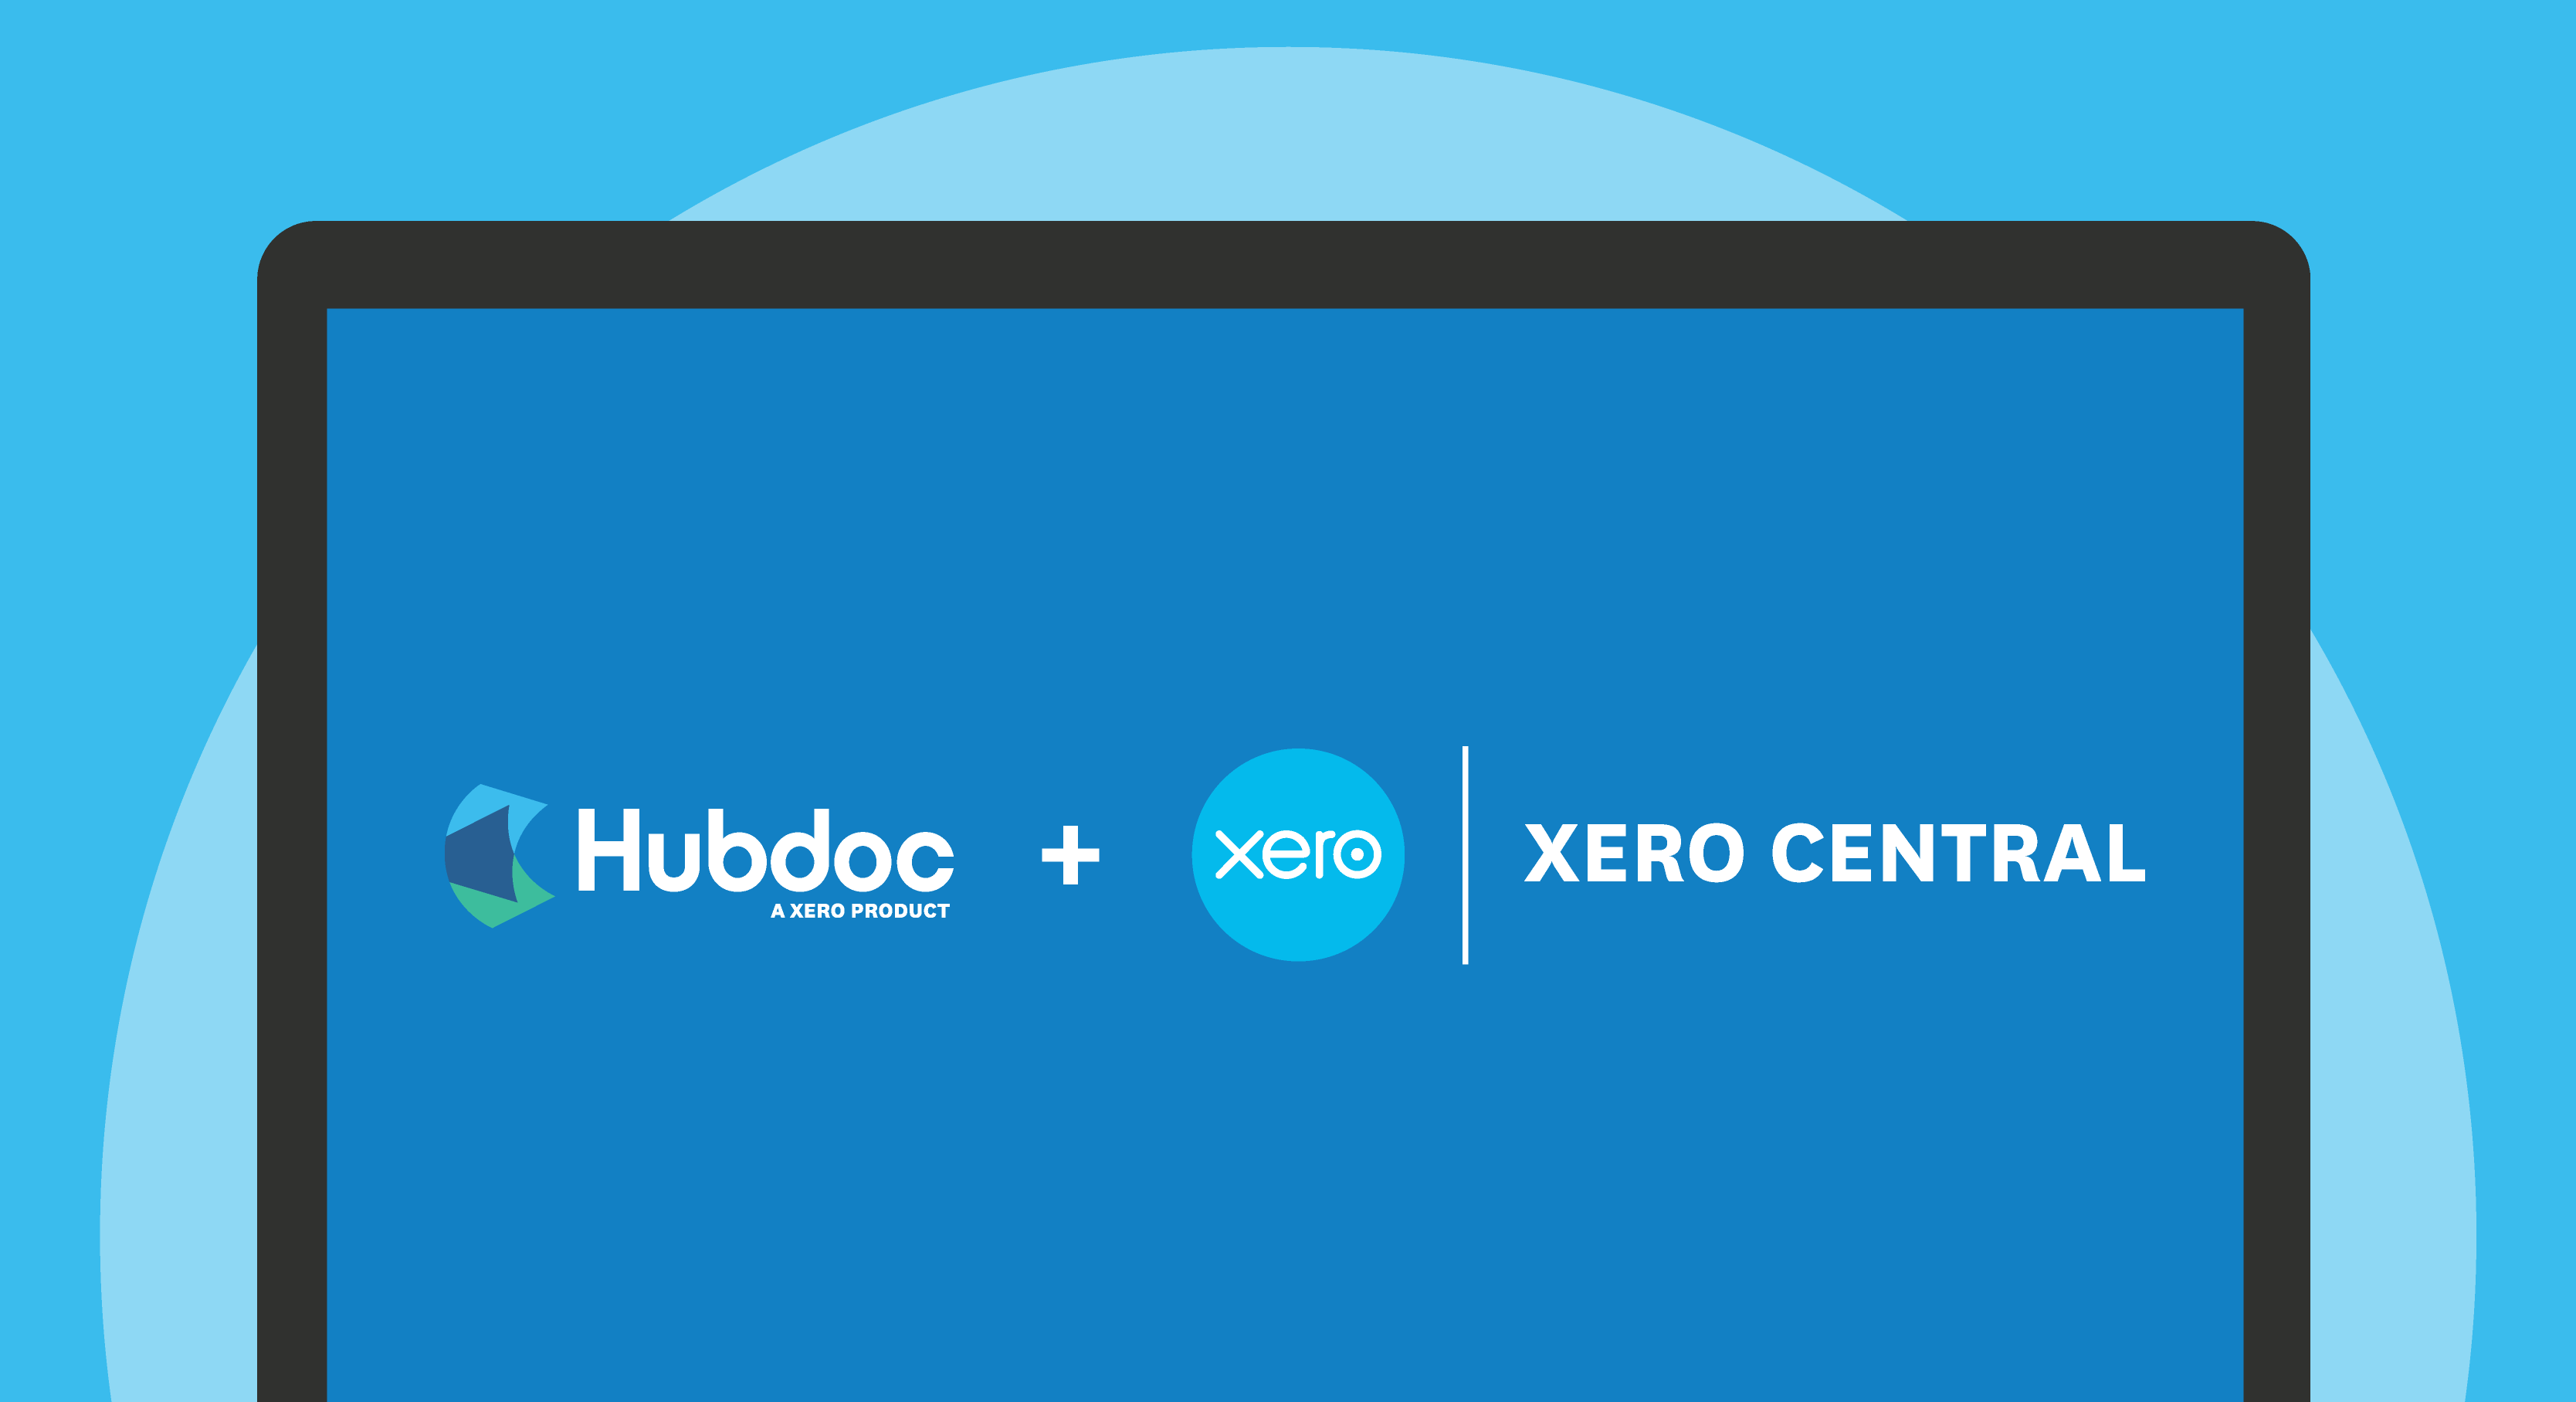 Hubdoc Support Xero Central